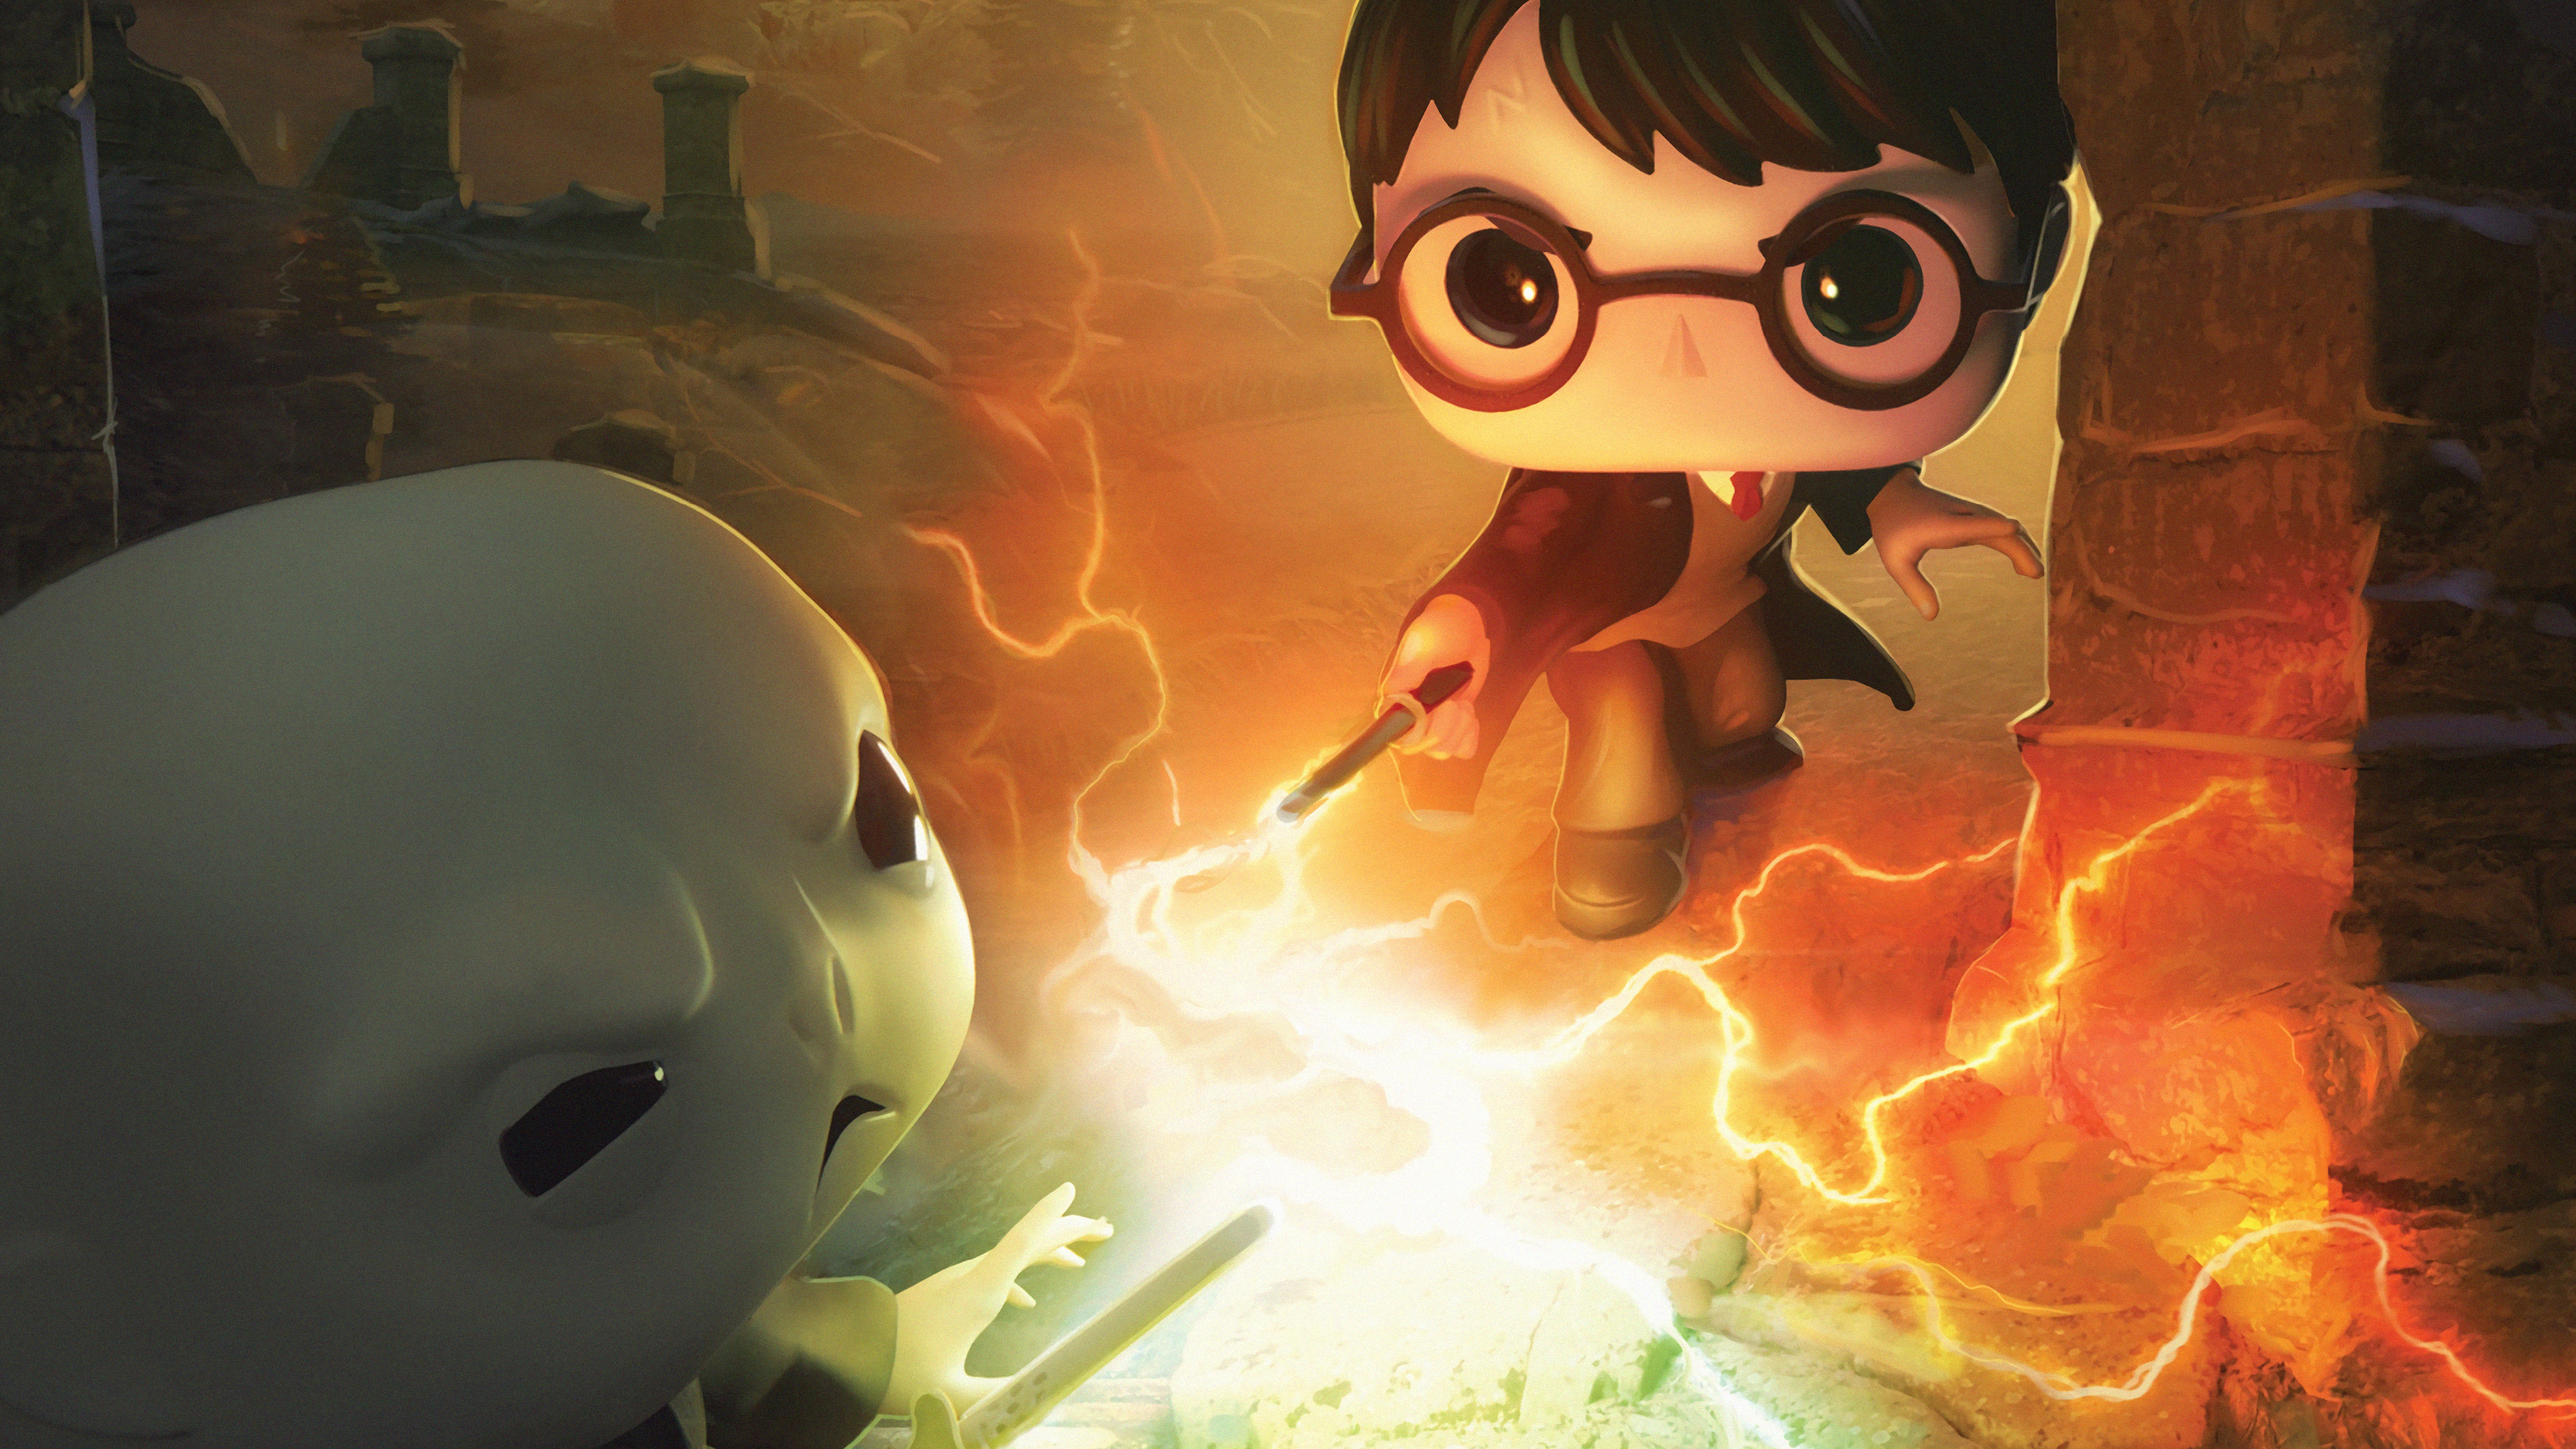 Harry Potter Dc Funkoverse 4k, HD Games, 4k Wallpapers